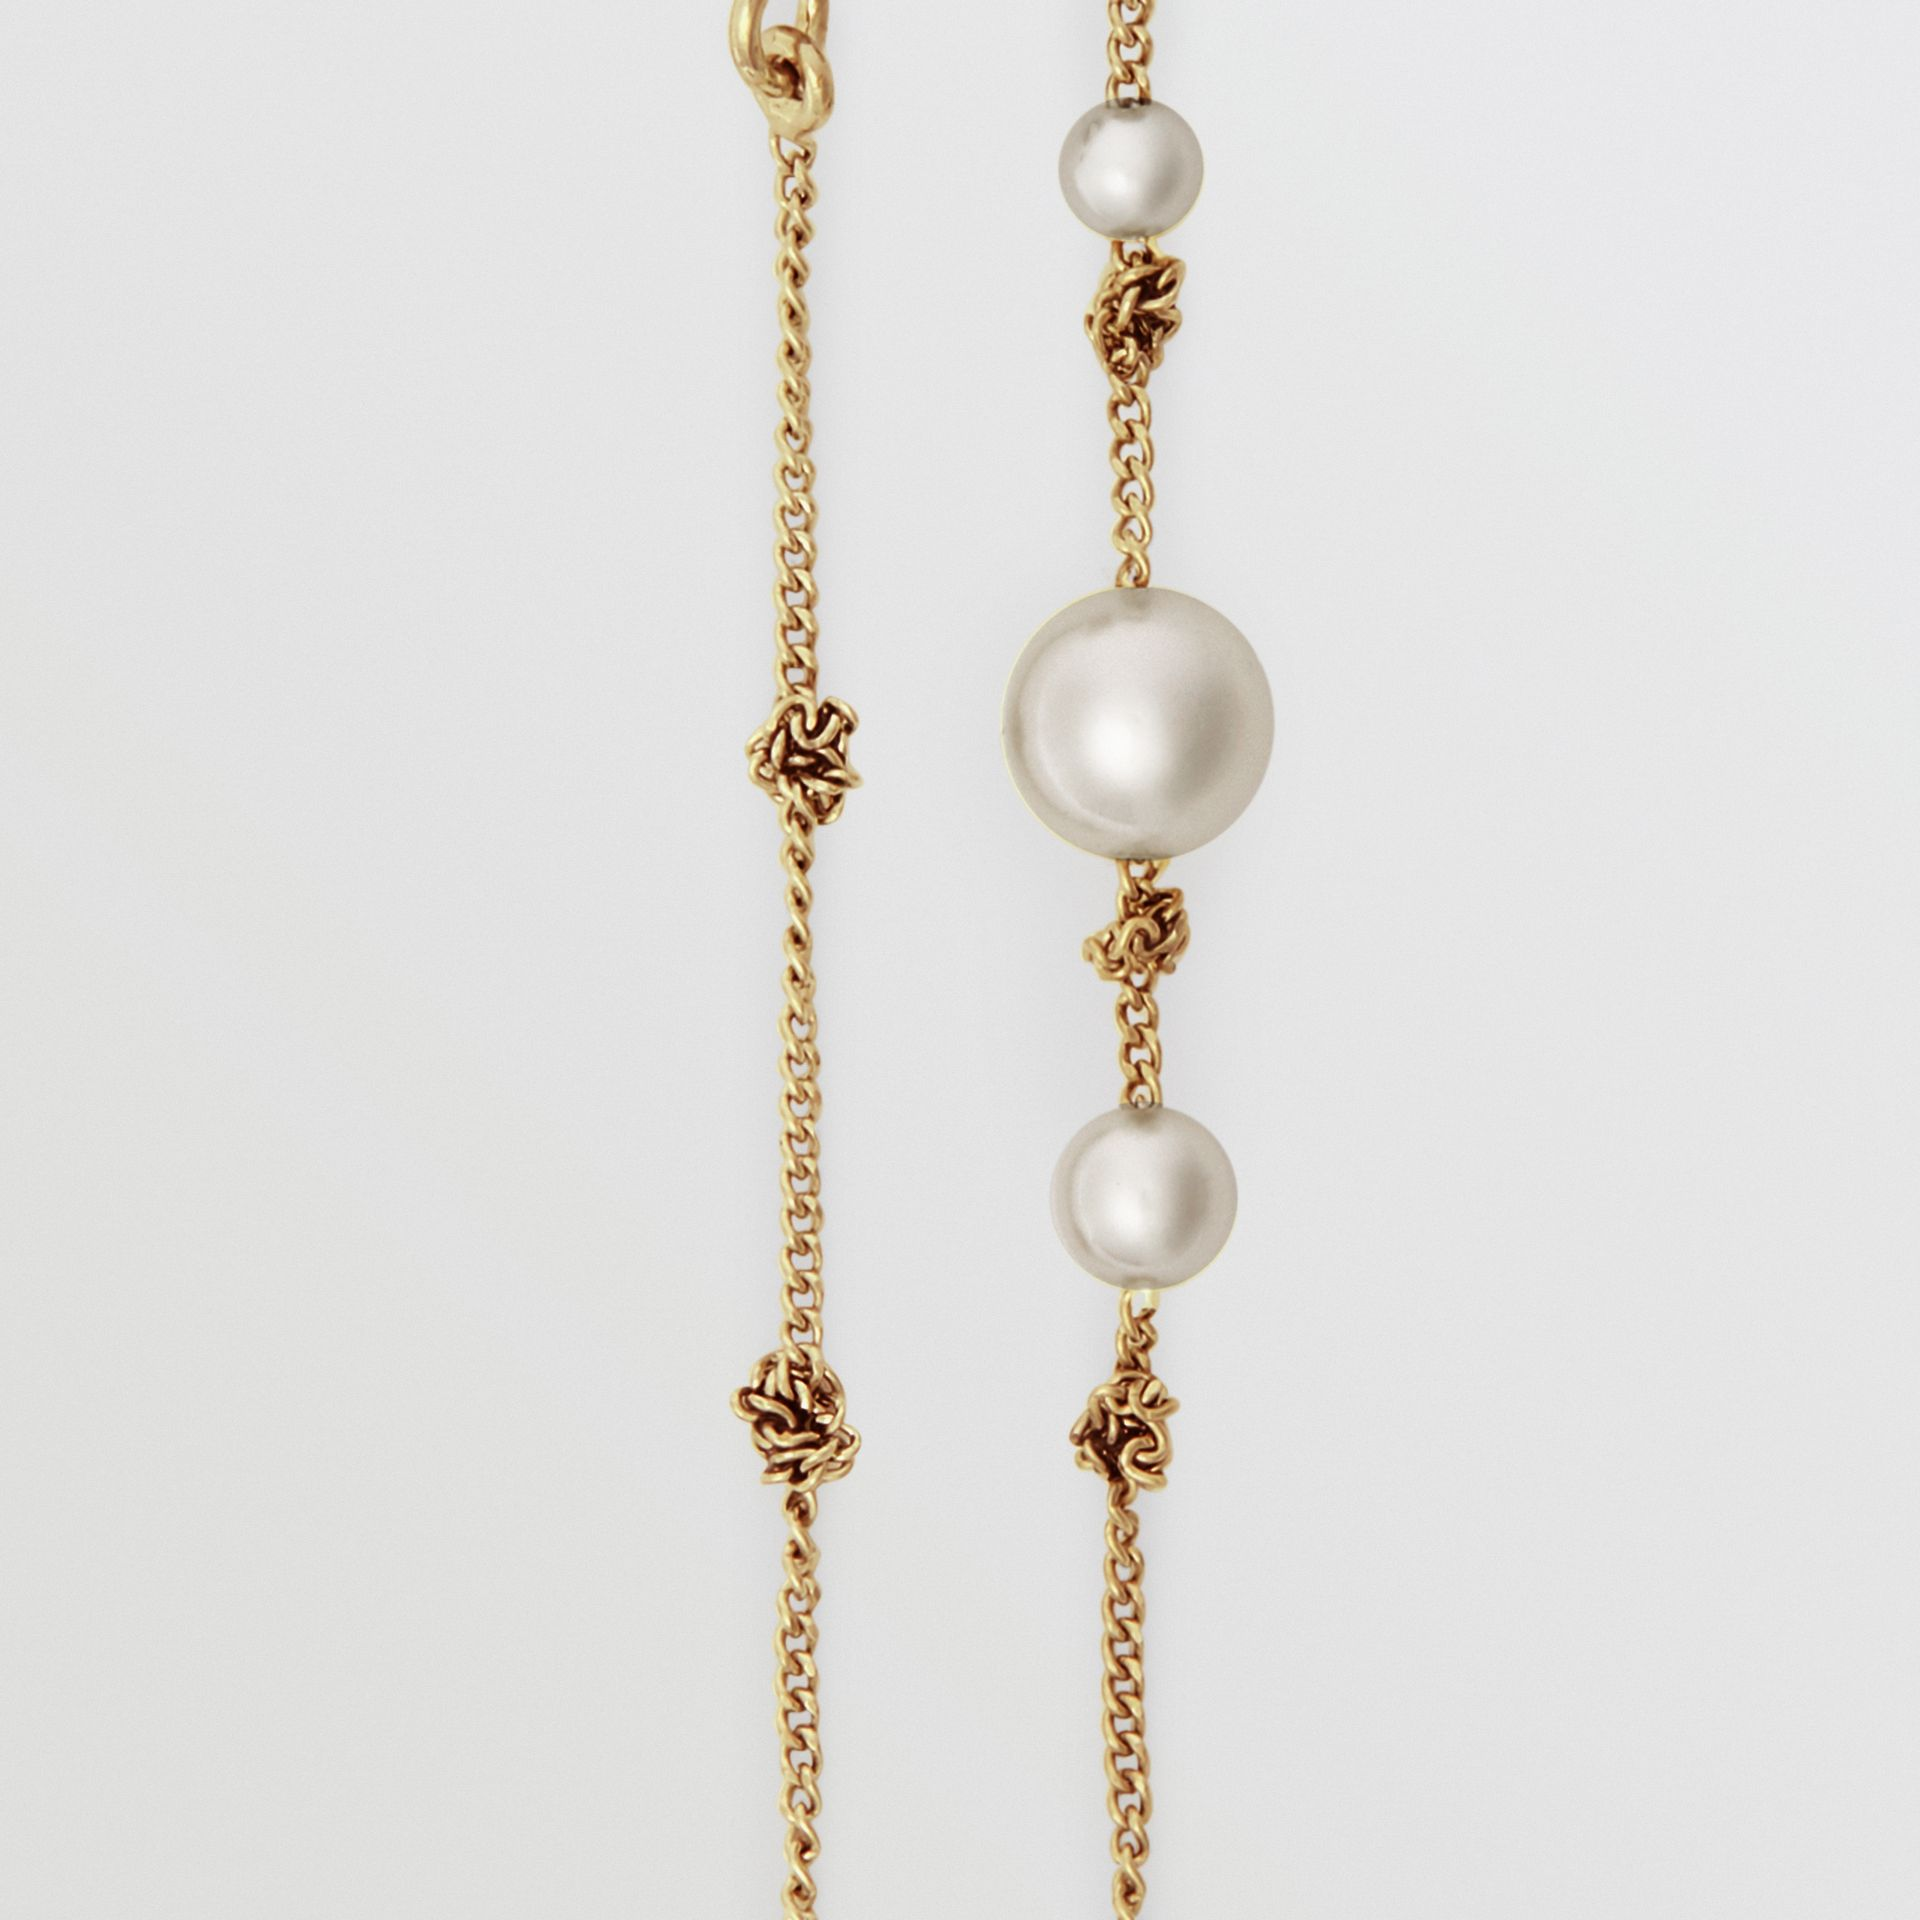 Faux Pearl Gold-plated Drop Earrings in Light - Women | Burberry United Kingdom - gallery image 1